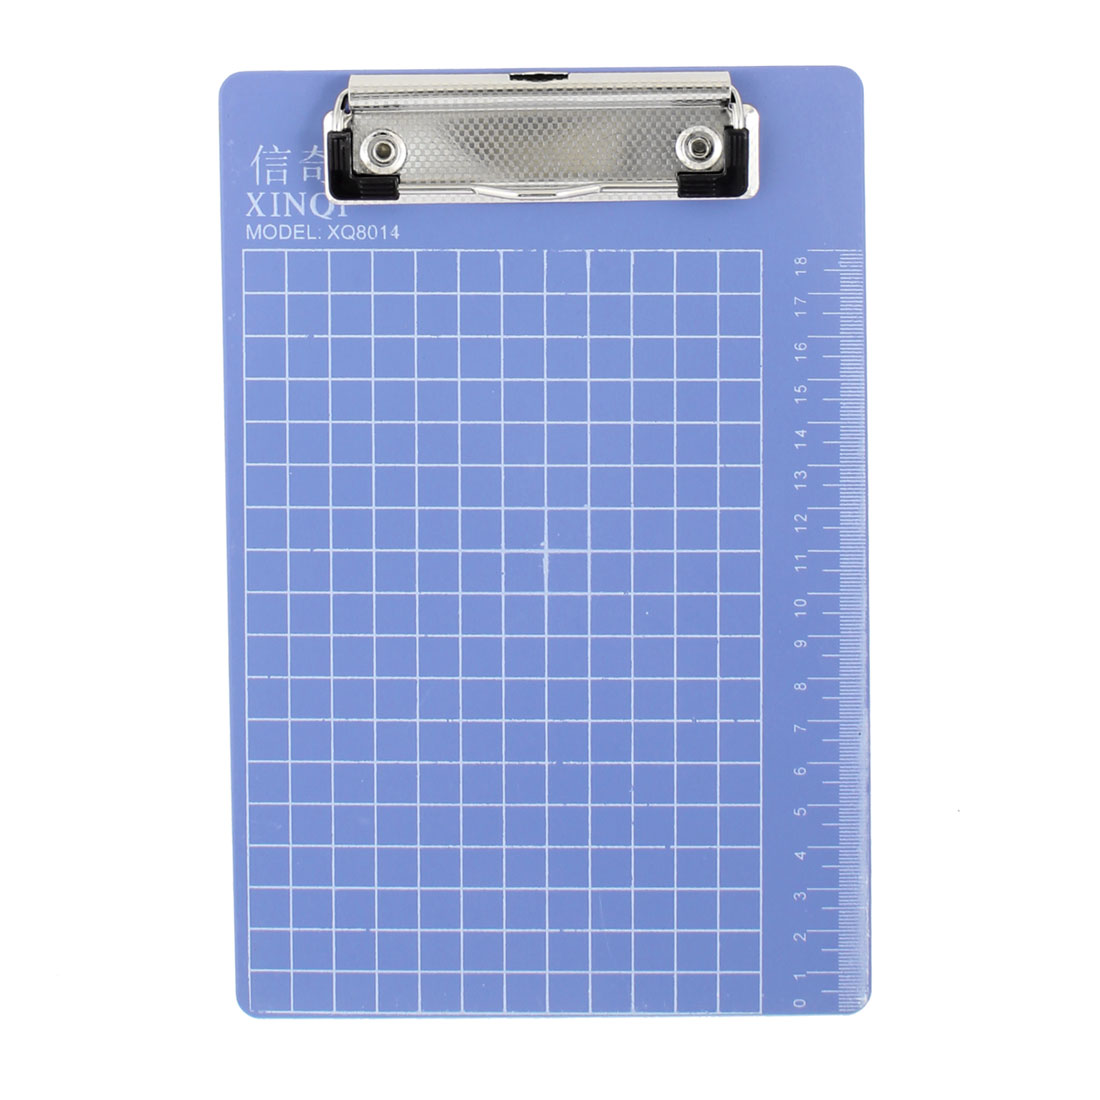 Spring Loaded A5 Record List Note Paper 220mm x 150mm Steel Blue